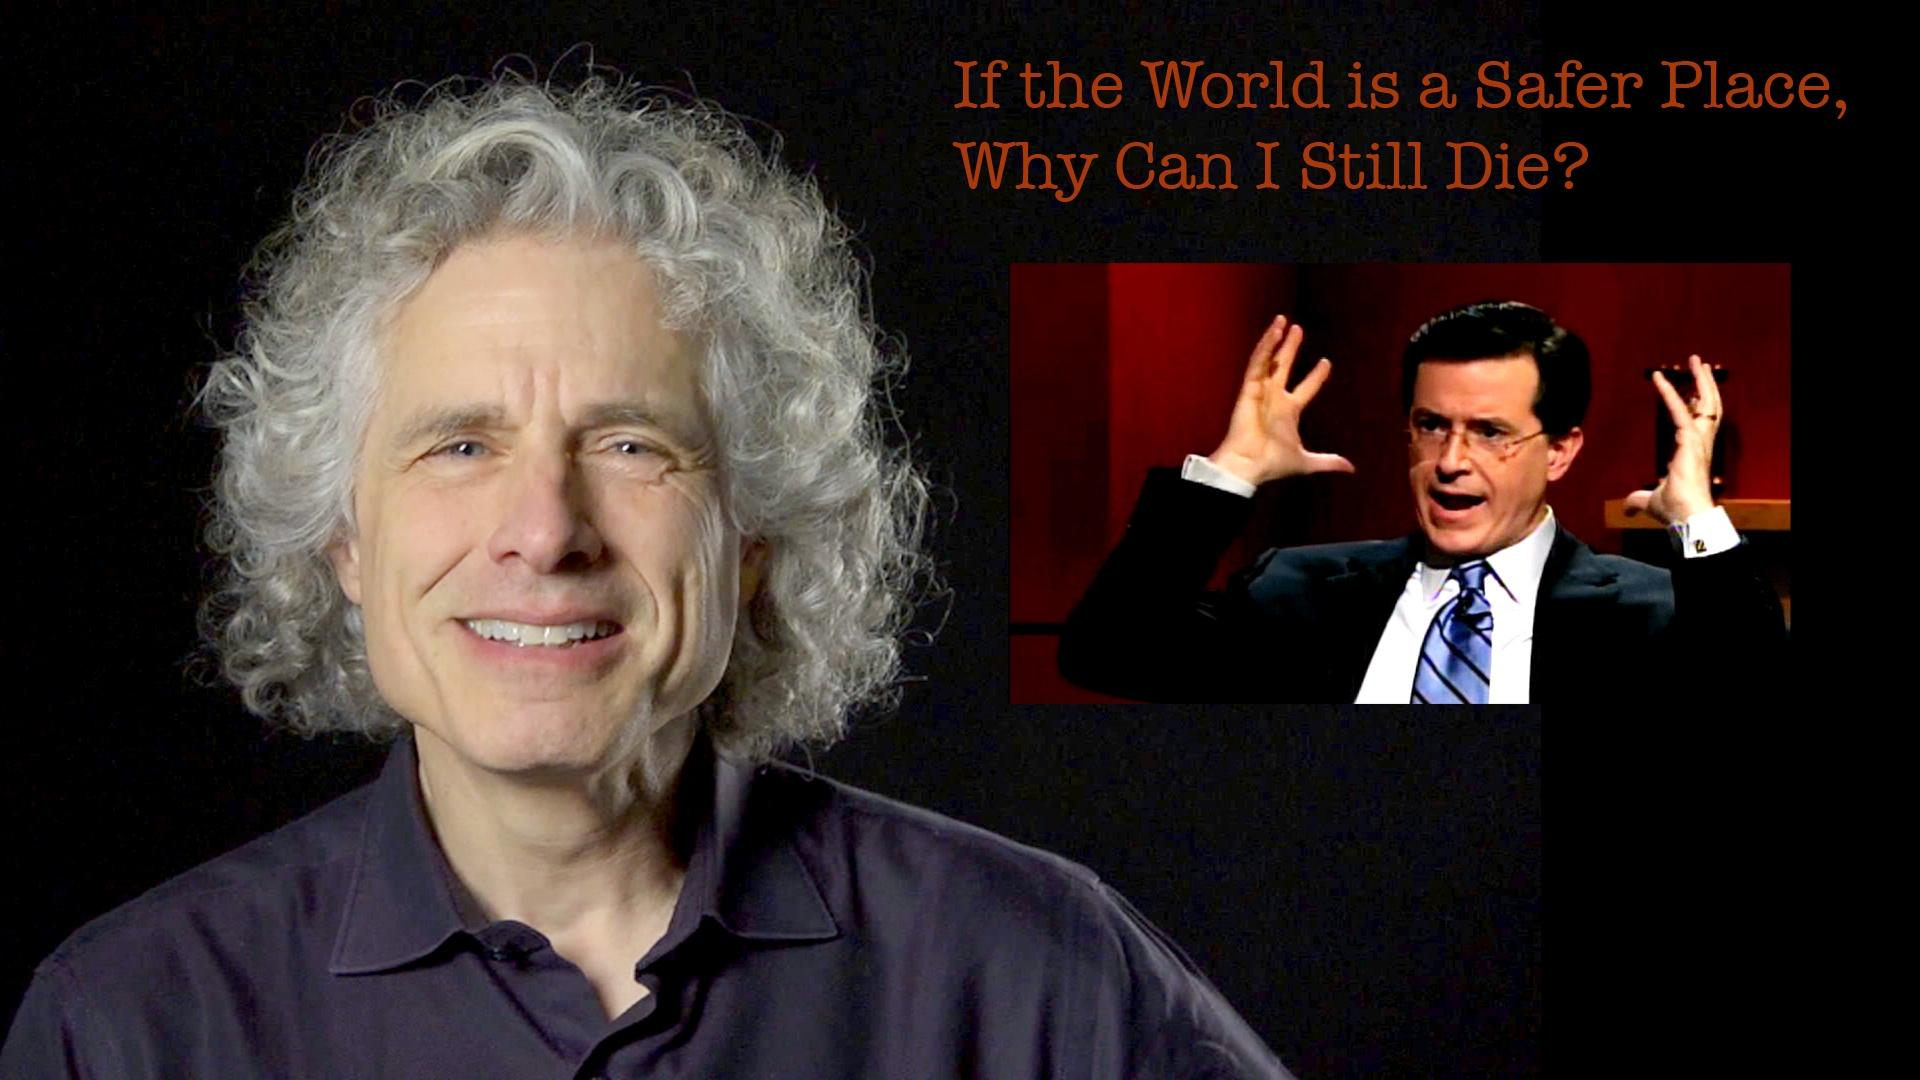 Steven Pinker: If the World is Safer, Why Can I Still Die? image